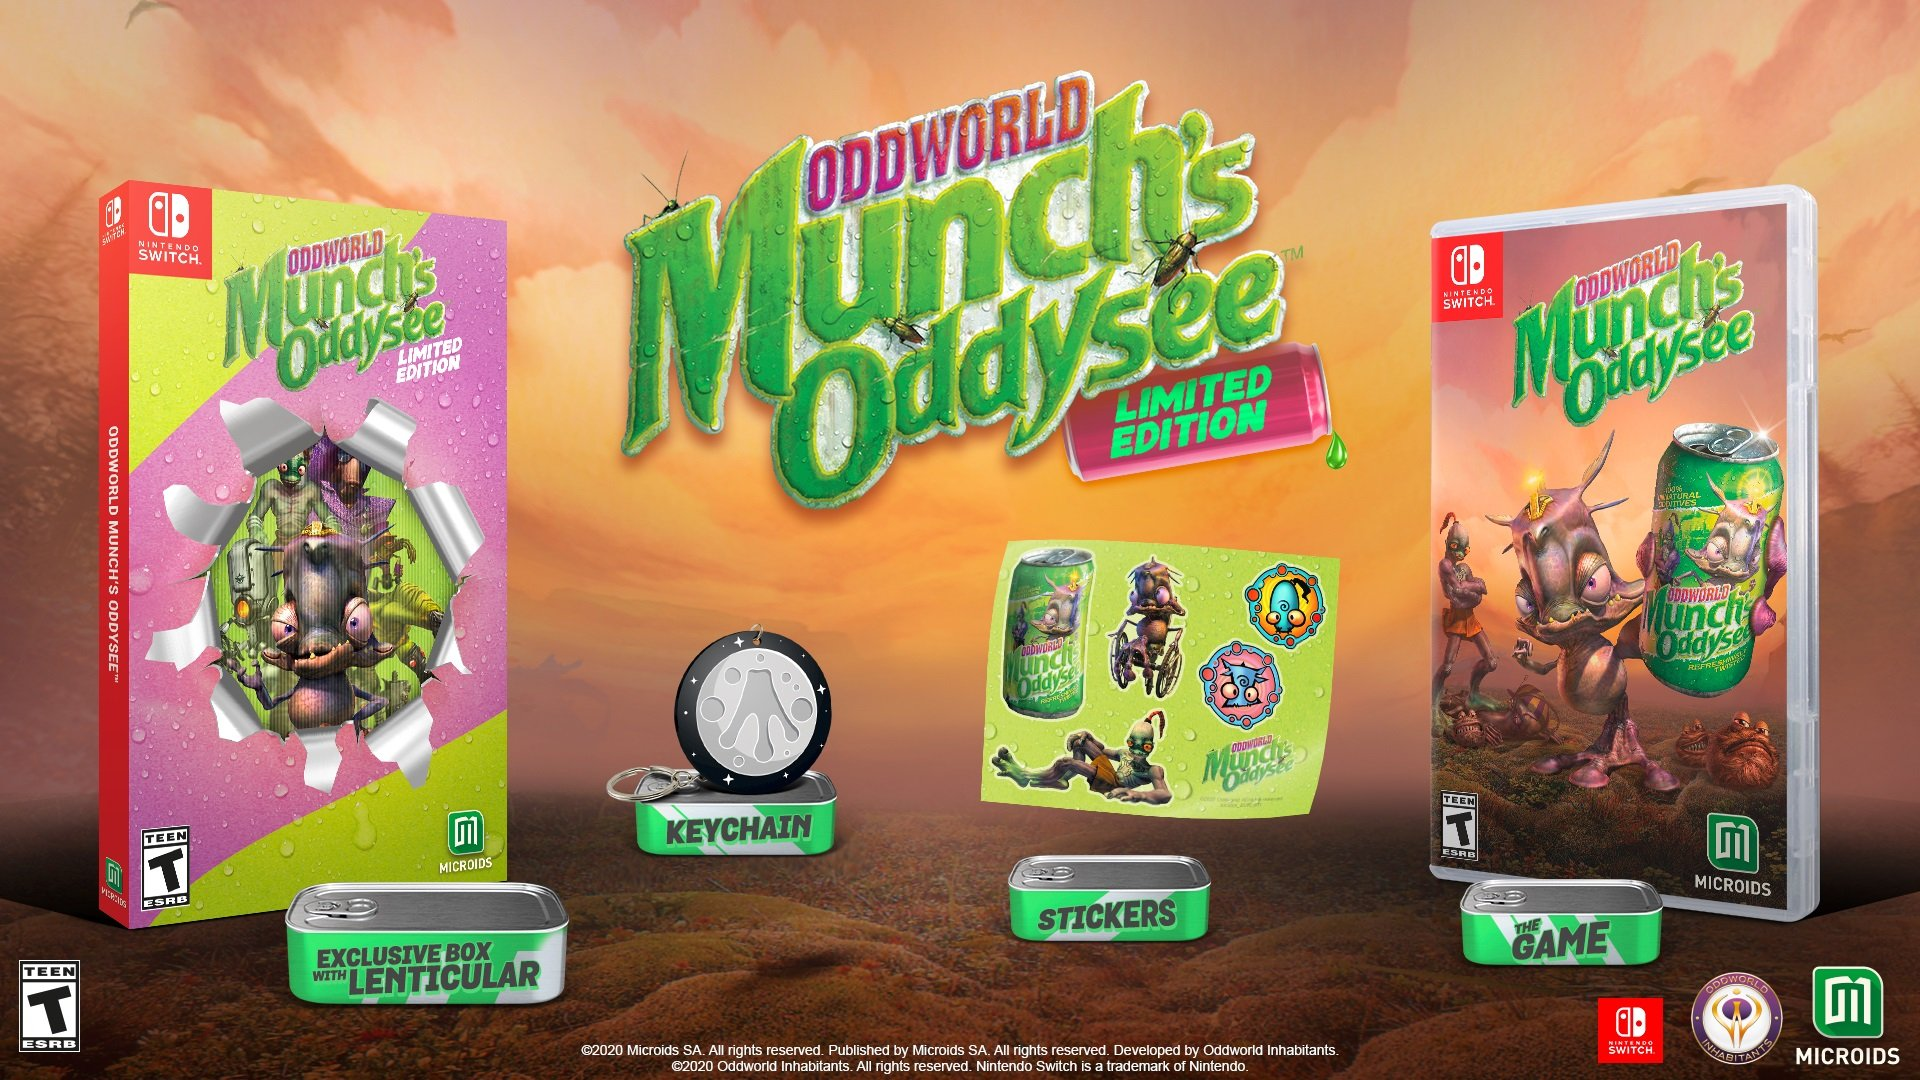 Oddworld Munch's Oddysee contest Switch win physical